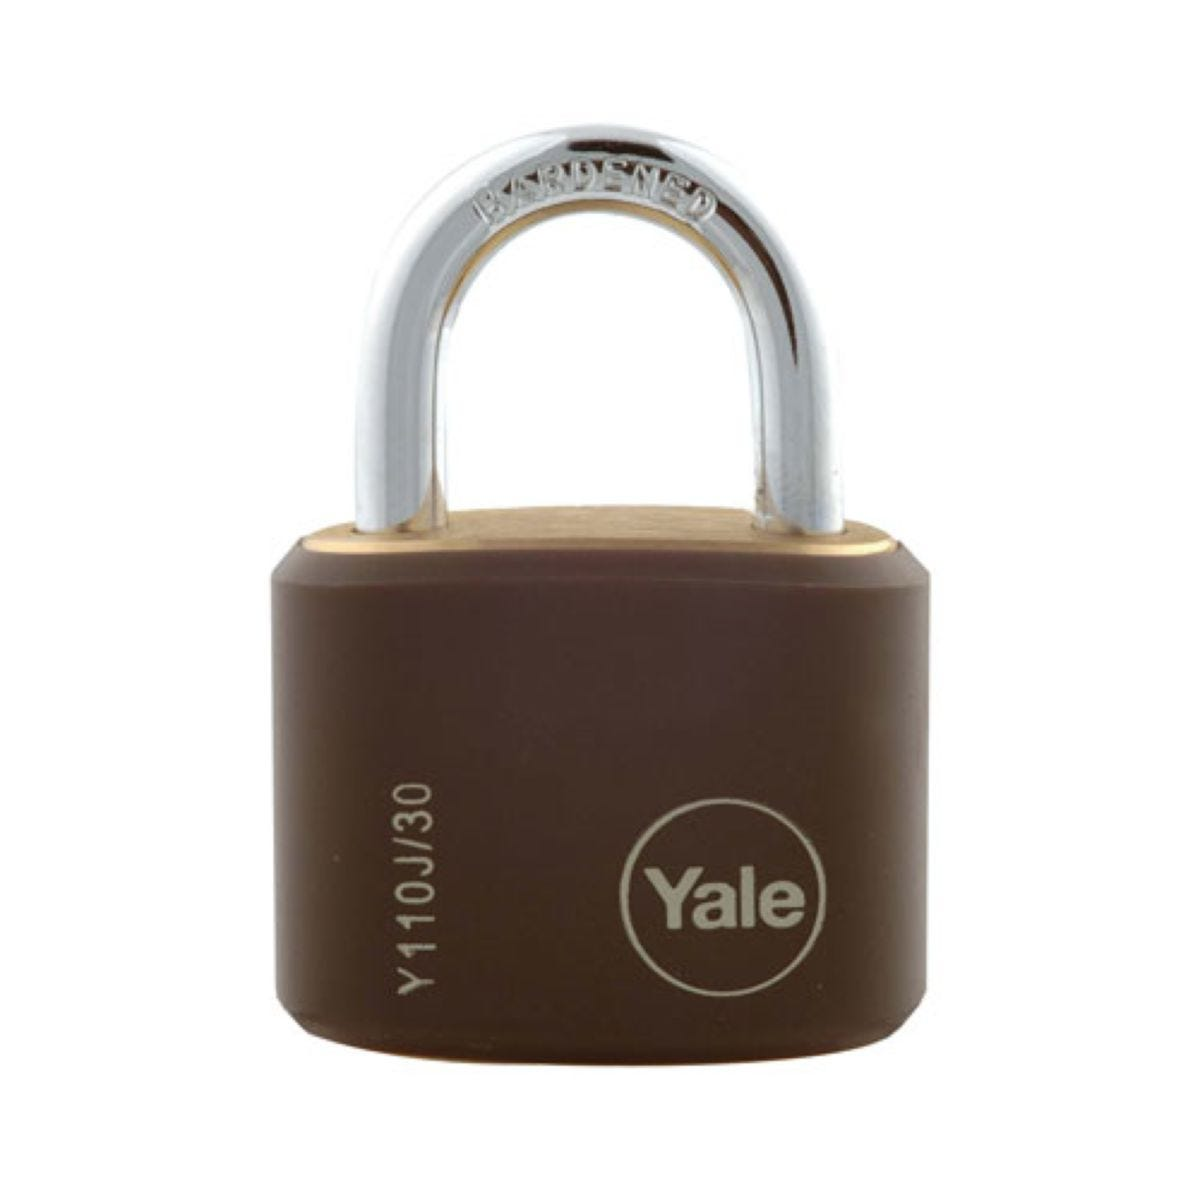 Yale 15mm Brass Padlocks – Pack of 4